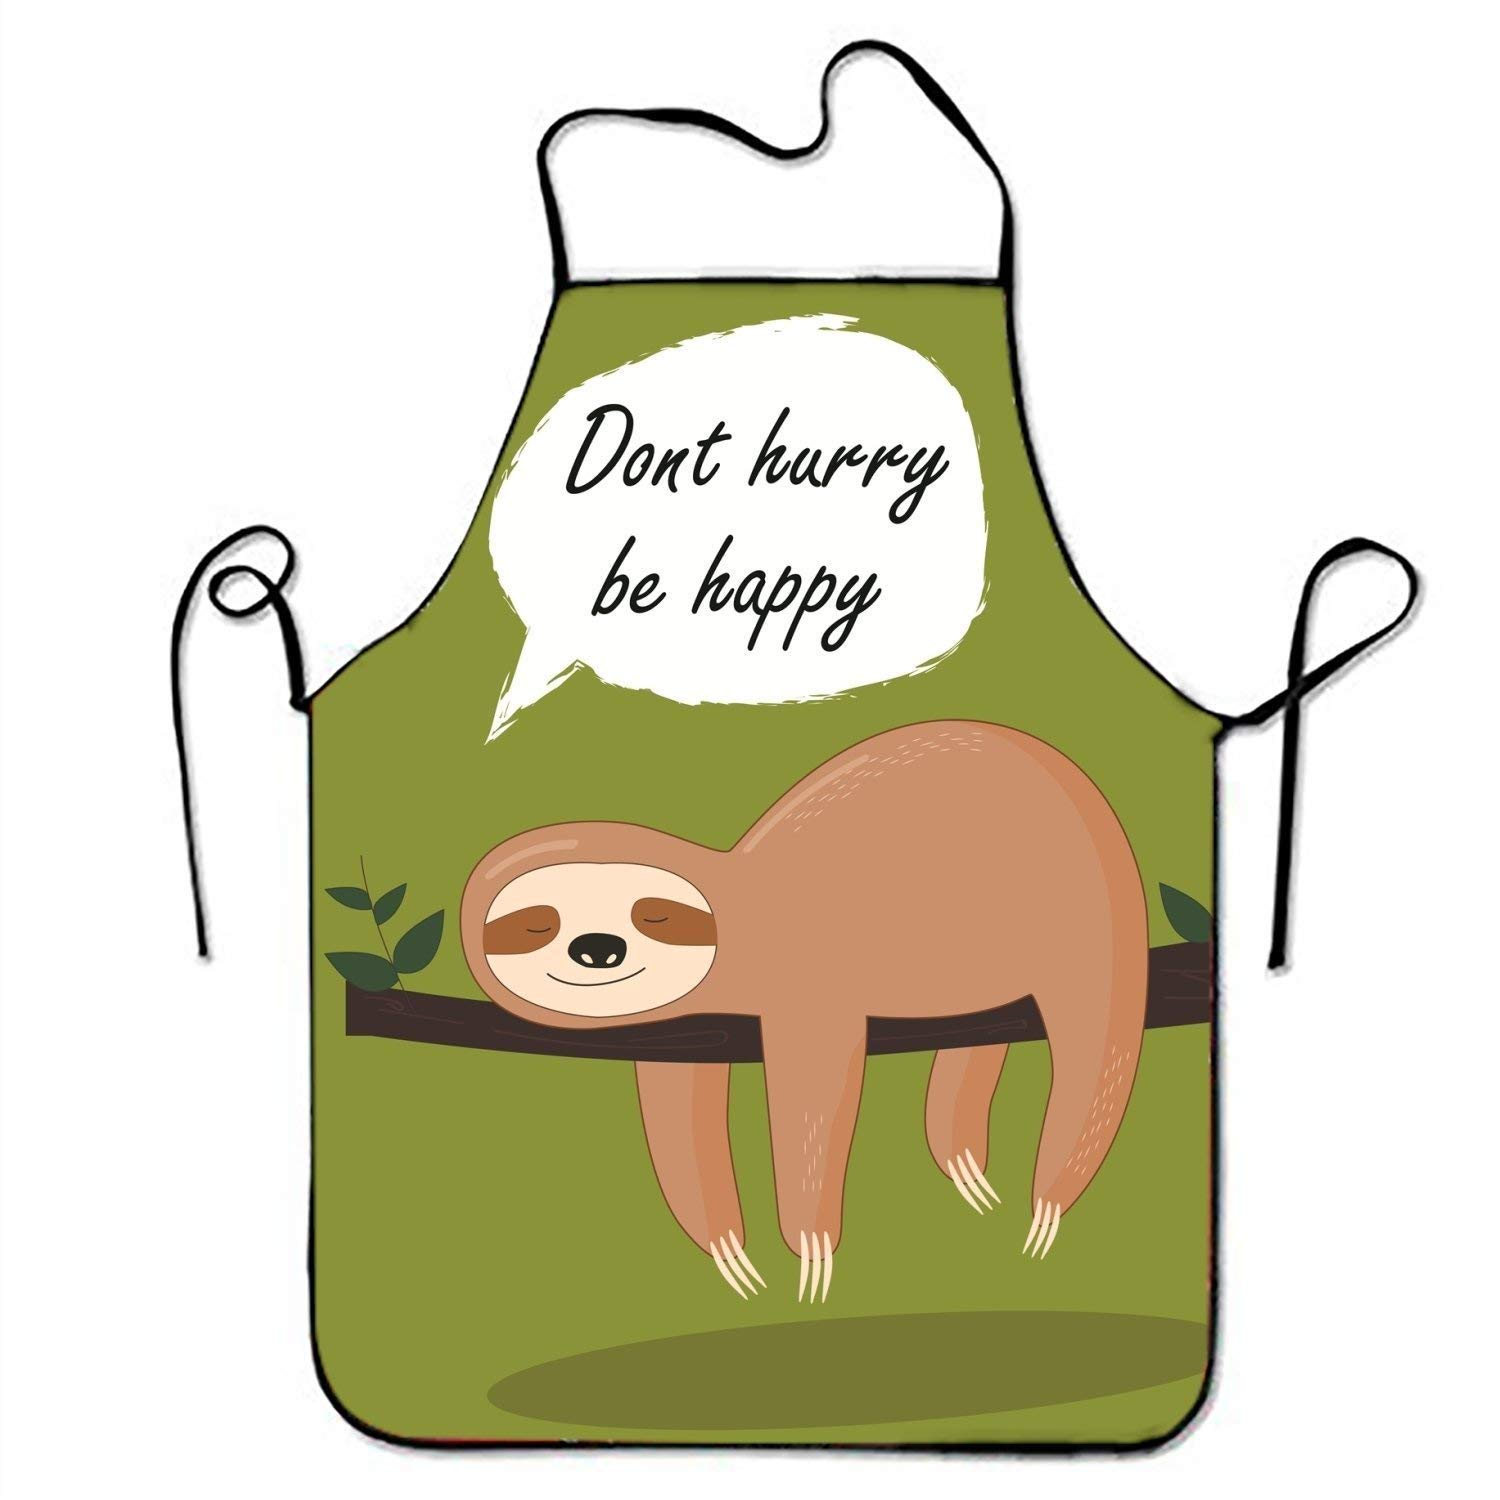 Don't Hurry Be Happy Lazy Sloth Kitchen Aprons For Women And Men Adjustable Neck Strap Restaurant Home Chef Bib Apron For Cooking BBQ Grill